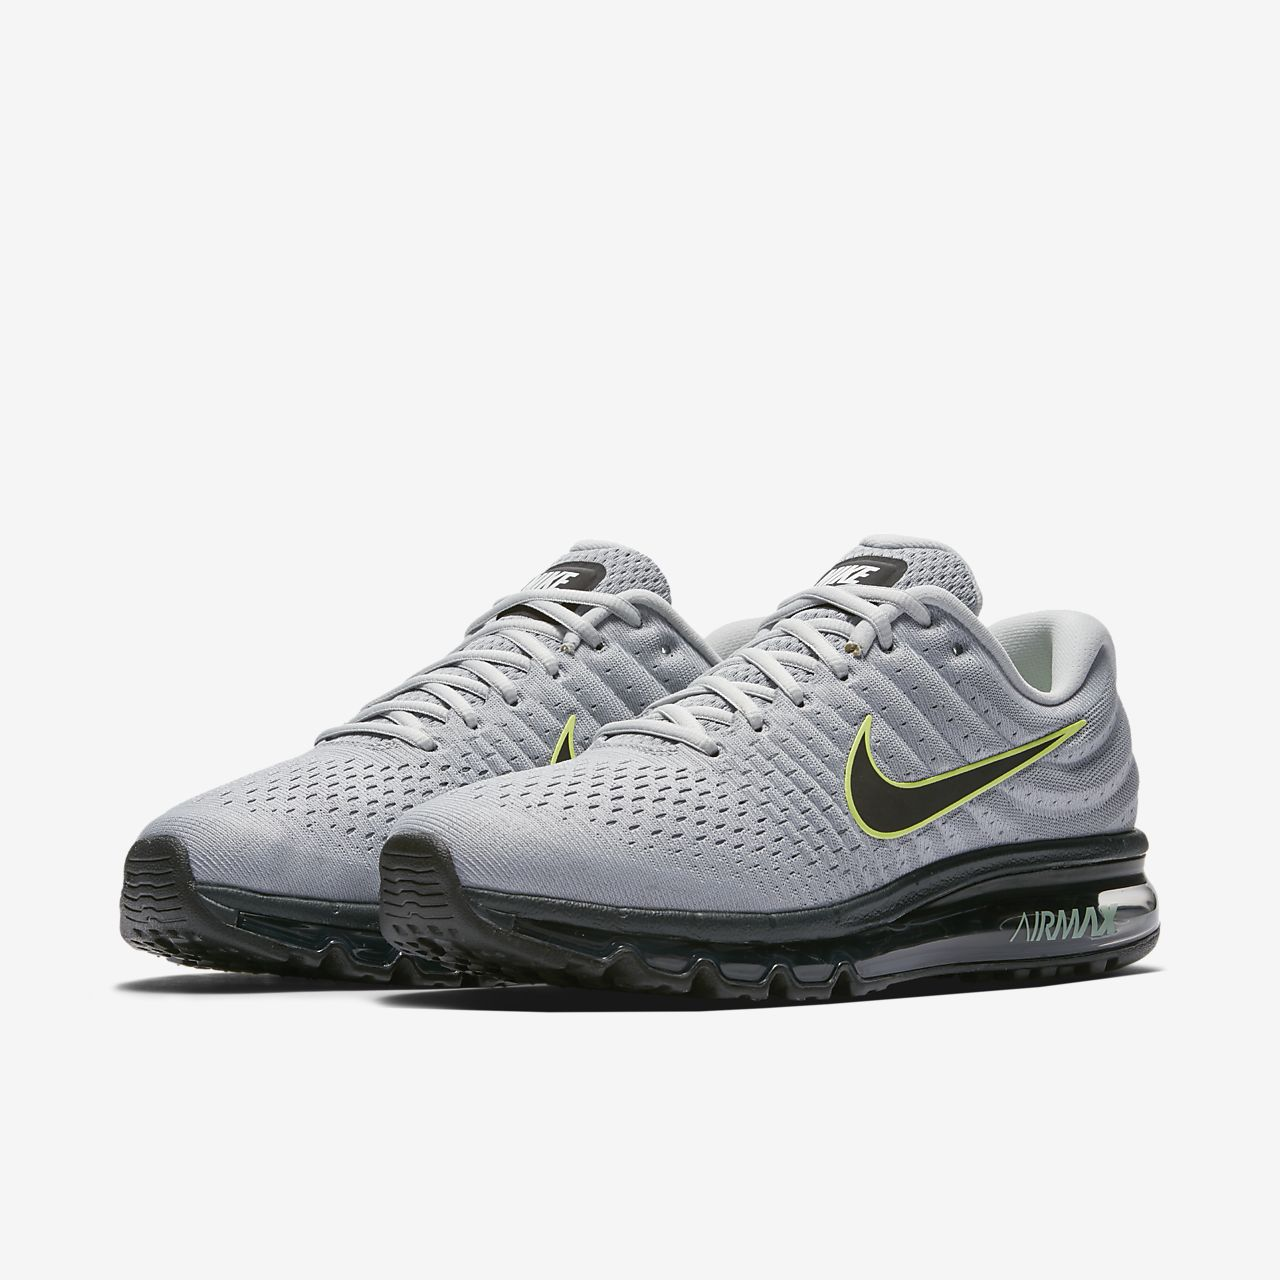 d990804fe2 Nike Air Max 2017 Men's Shoe. Nike.com CA